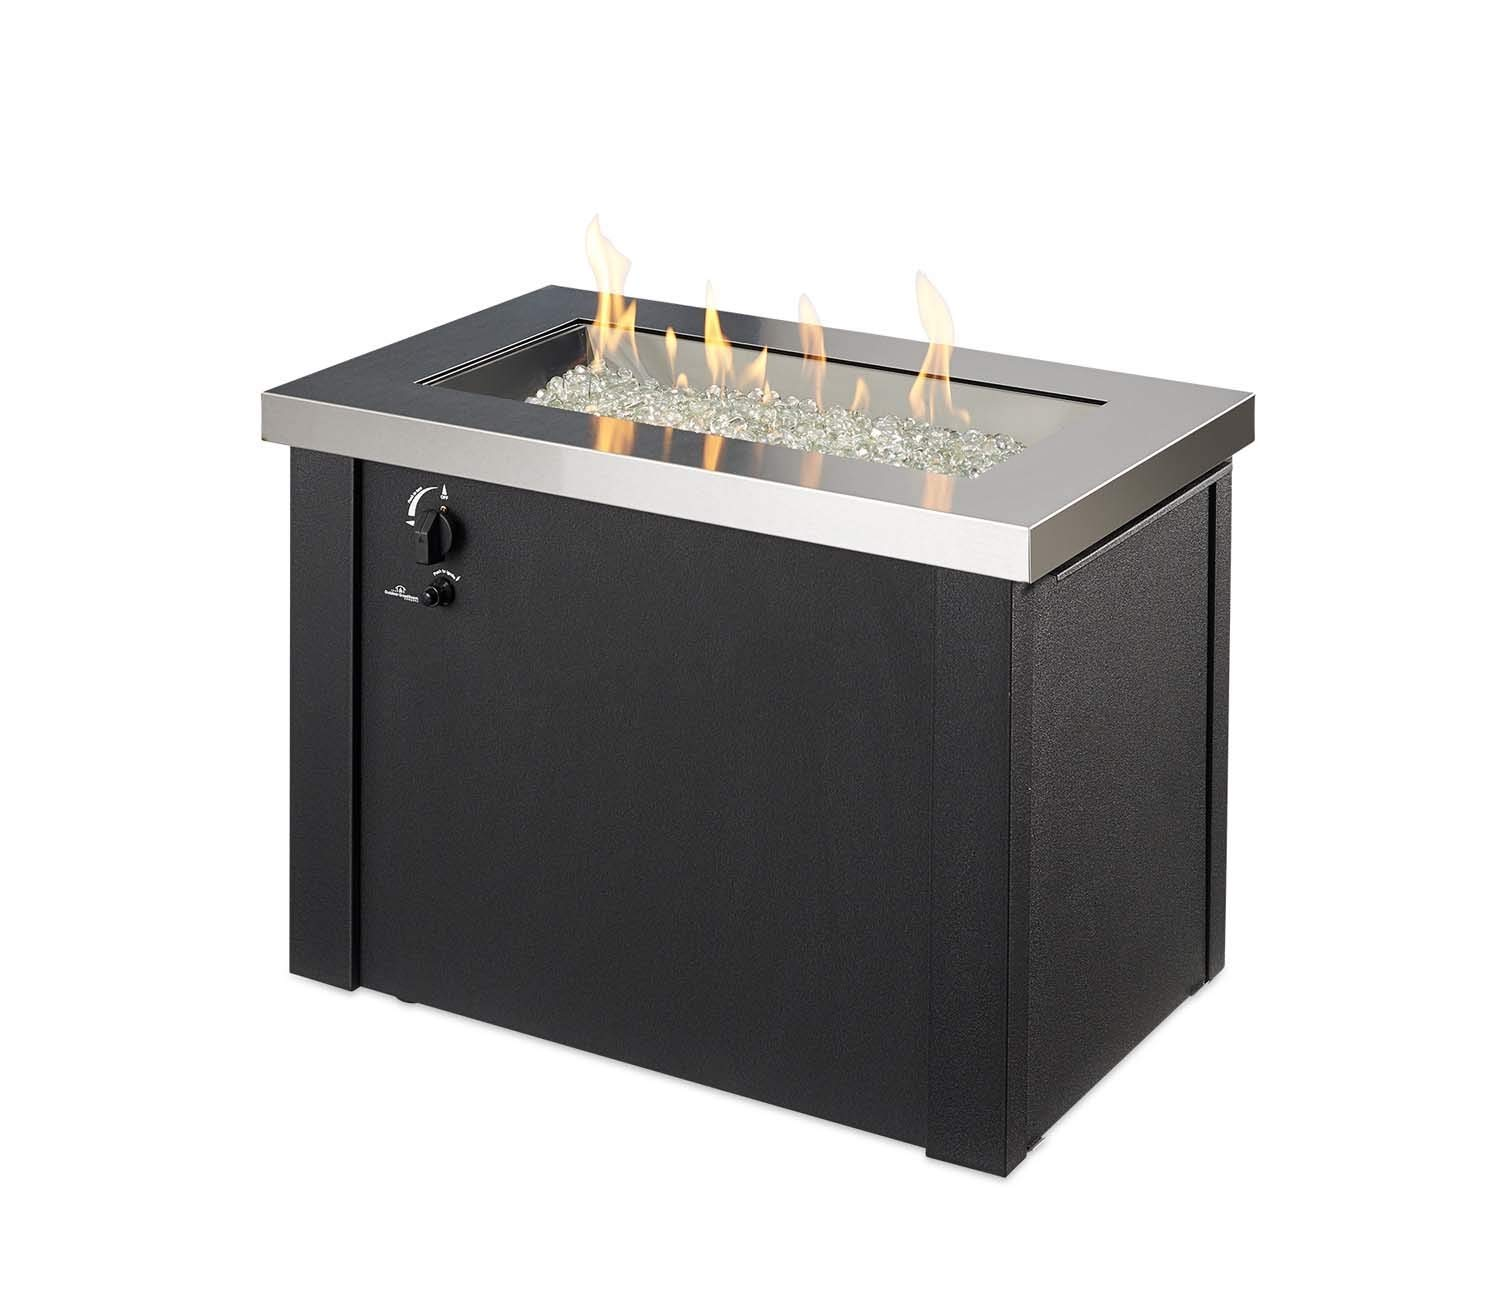 Outdoor Great Room Providence Stainless Steel Crystal Fire Pit Table with Black Metal Base by The Outdoor GreatRoom Company